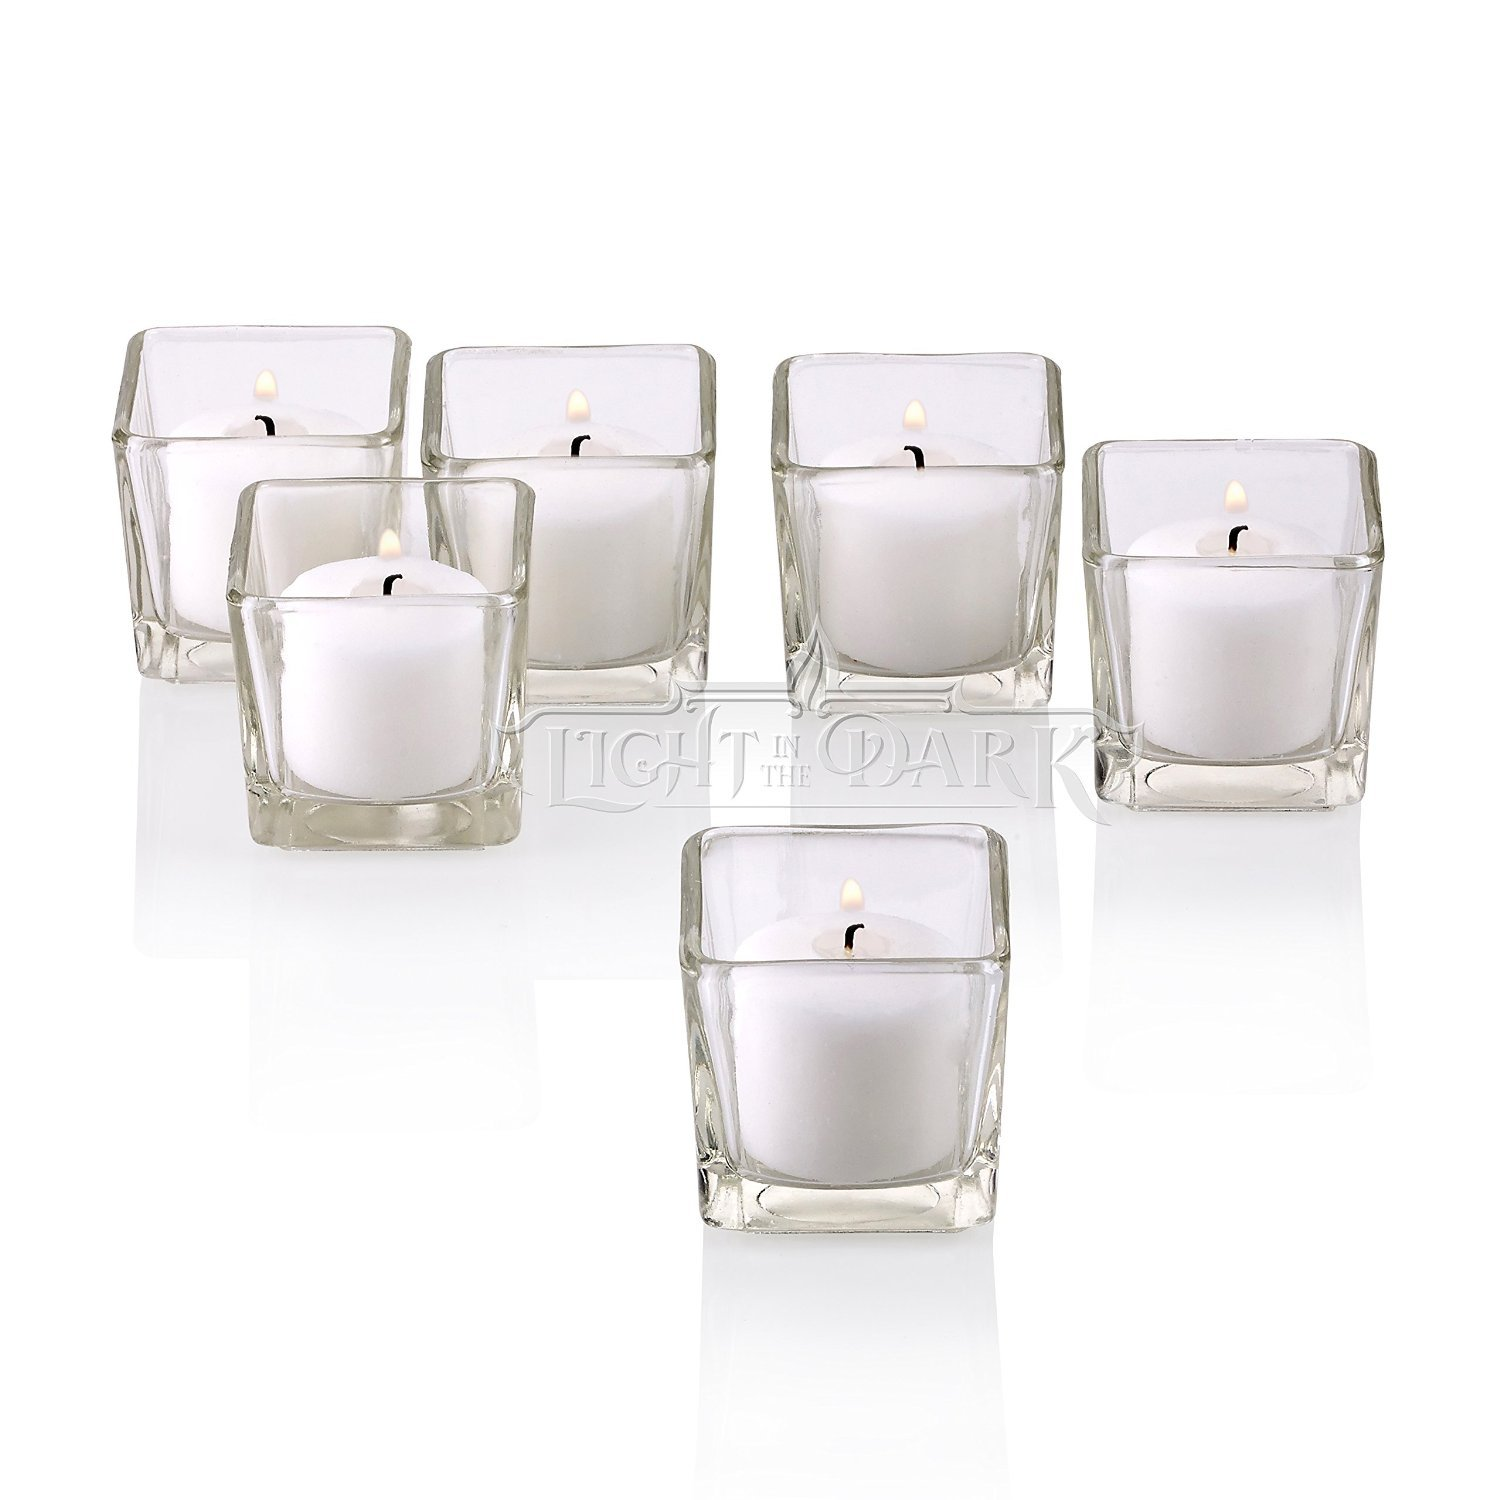 Clear Glass Square Votive Candle Holders With White votive candles Burn 10 Hours Set of 72